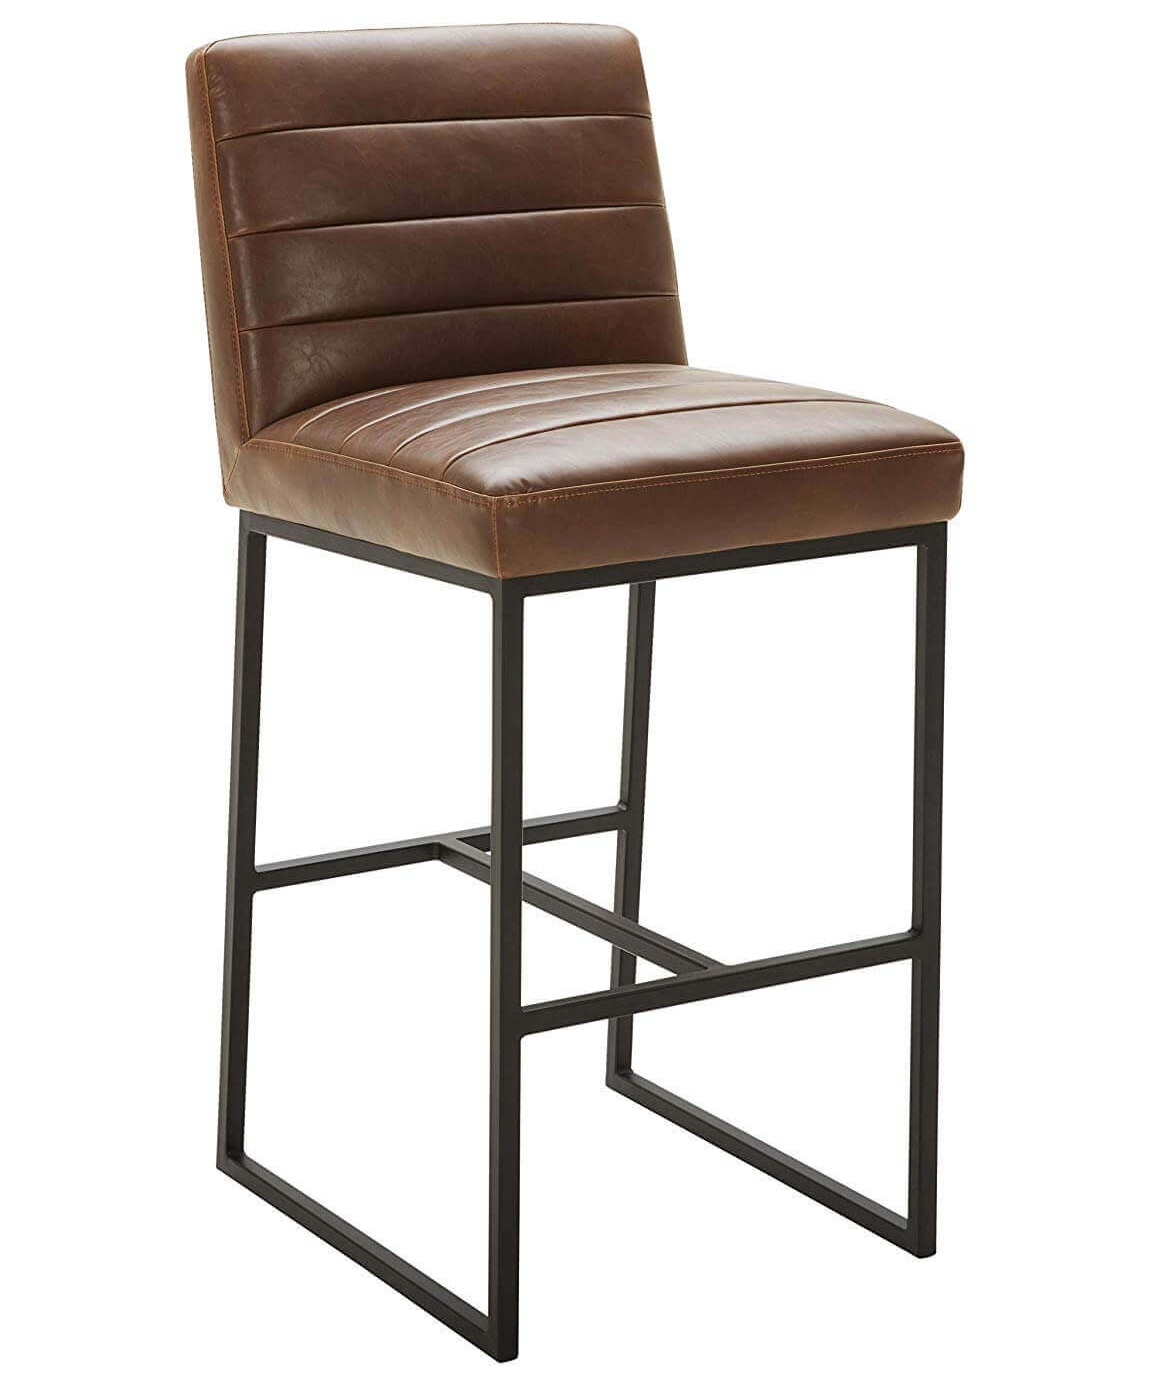 Rivet Decatur Modern Stool